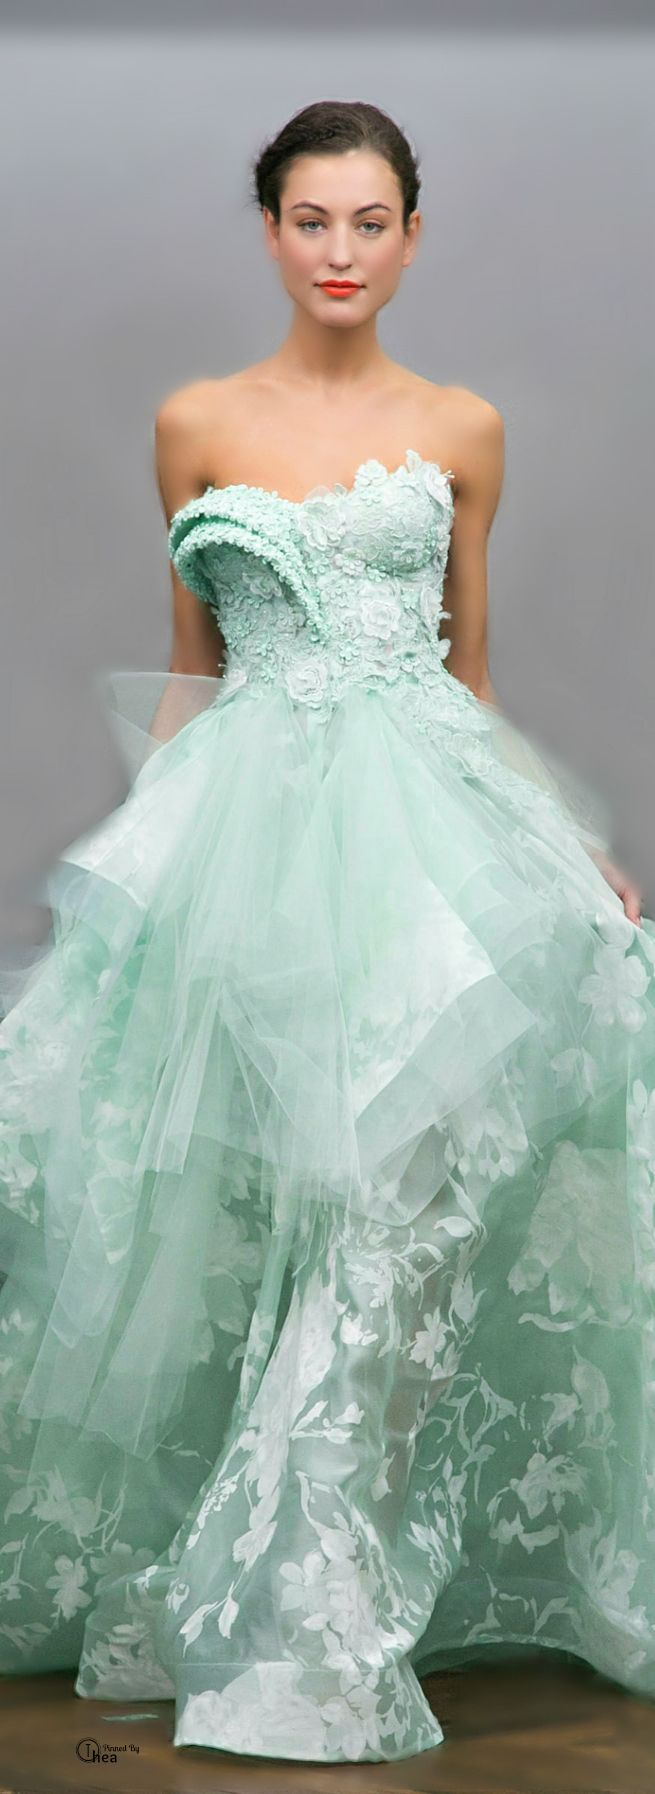 148 best Color: Tiffany Blue images on Pinterest | Turquoise, Party ...